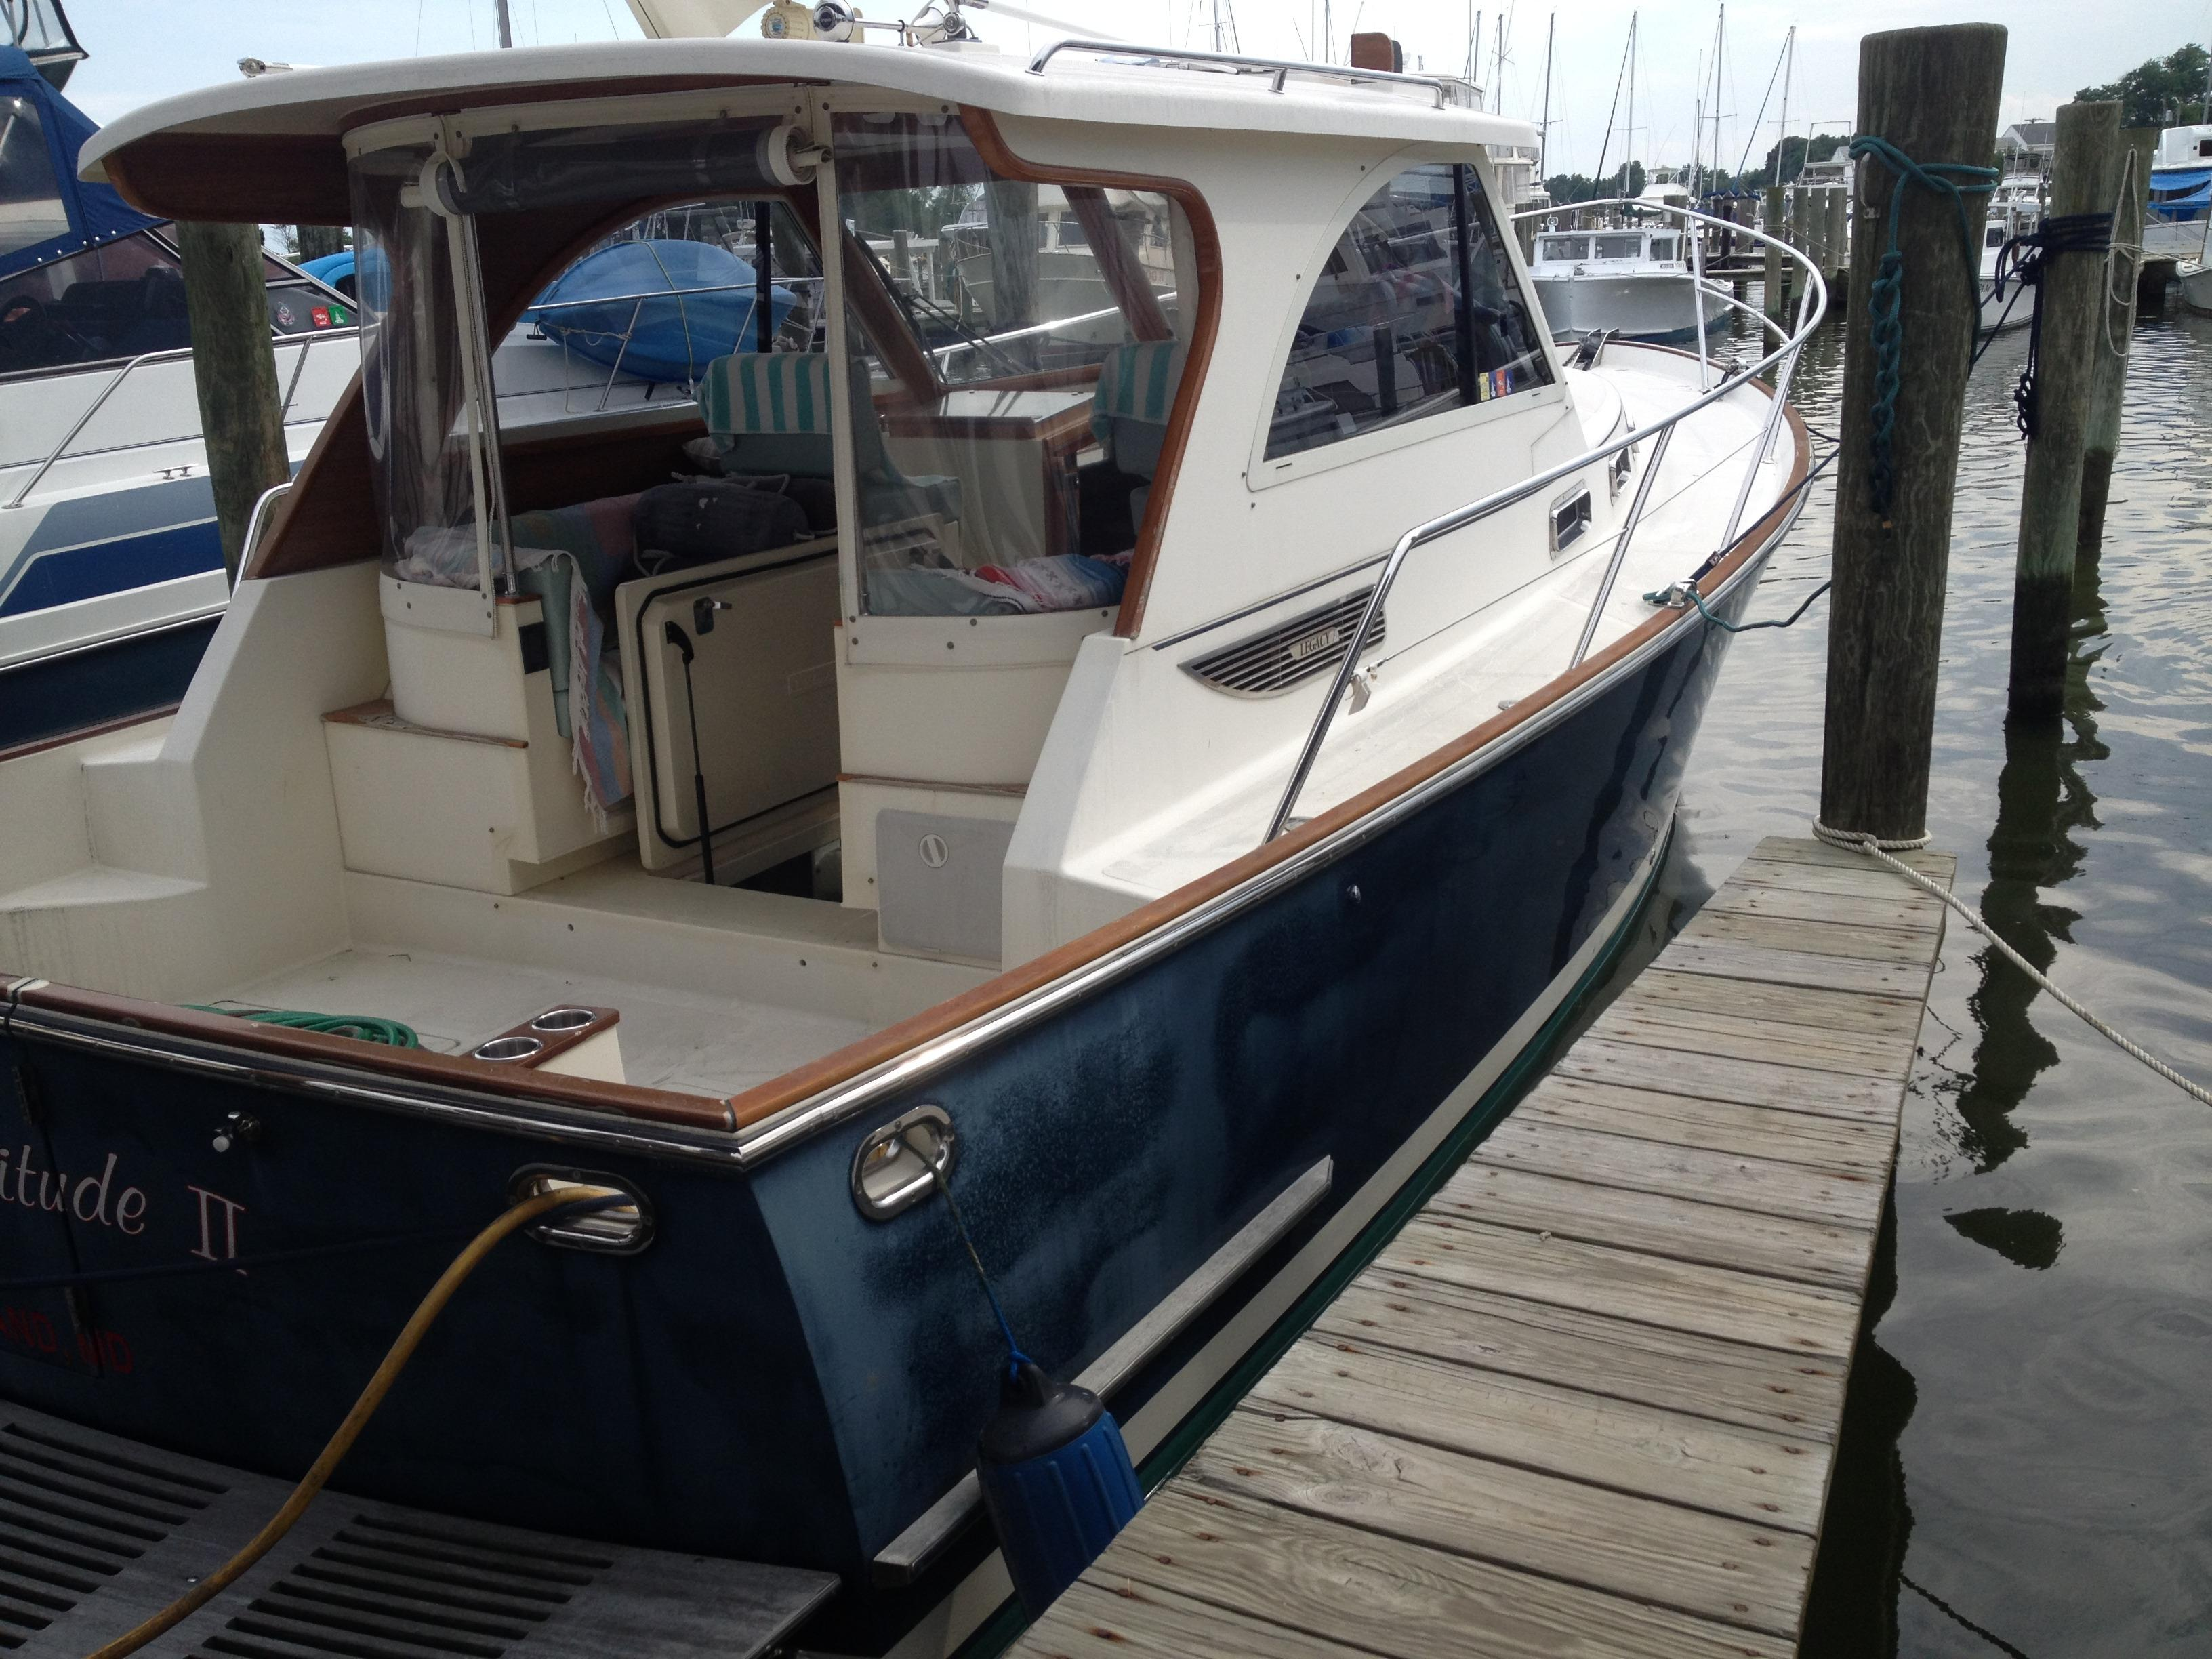 Legacy Yachts 32, Chester, MD